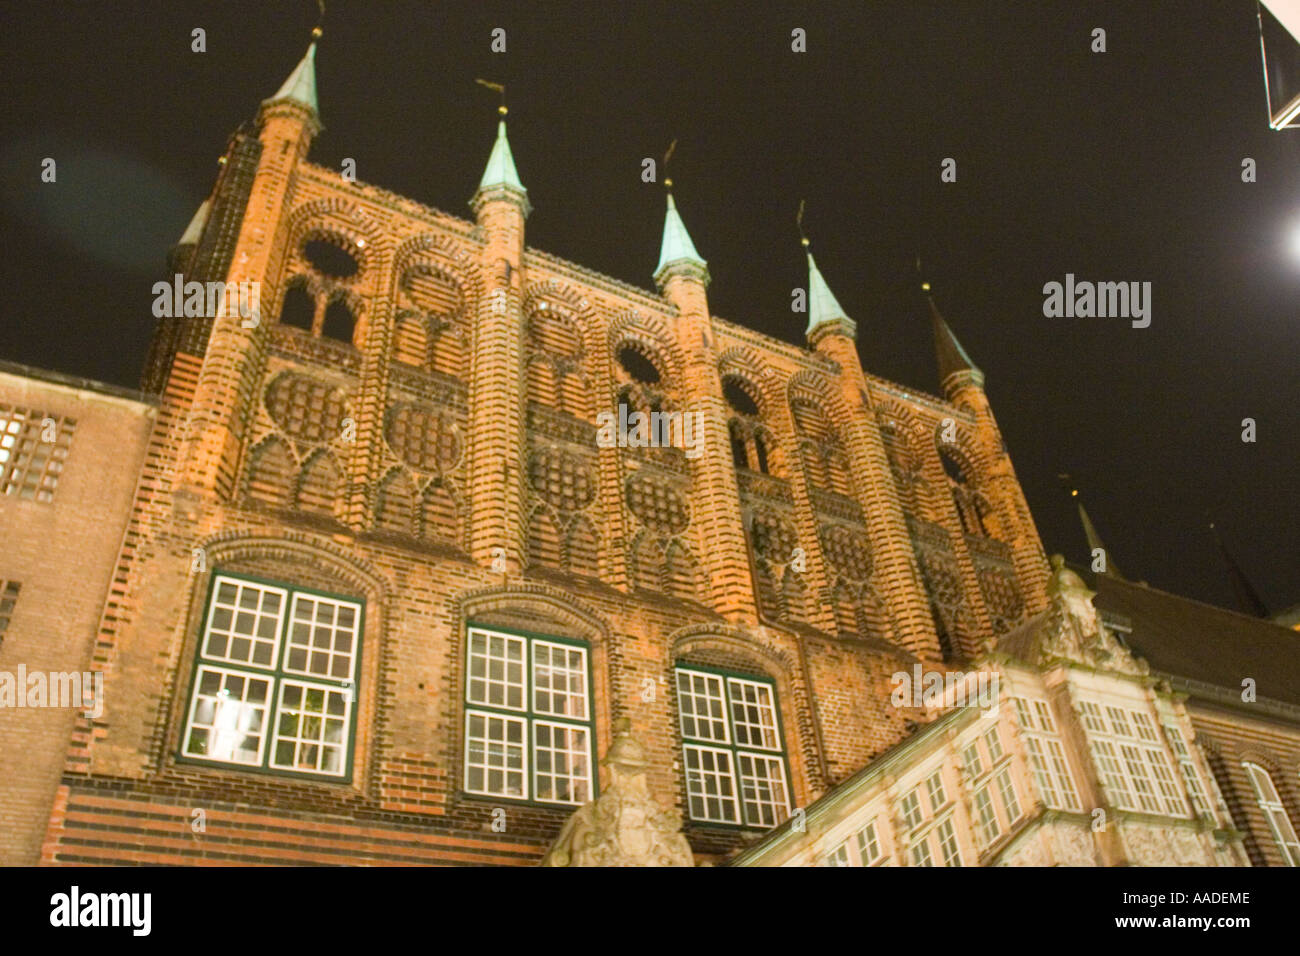 Town hall Rathaus front at night in Lubeck - market  town, Northern Germany - Stock Image